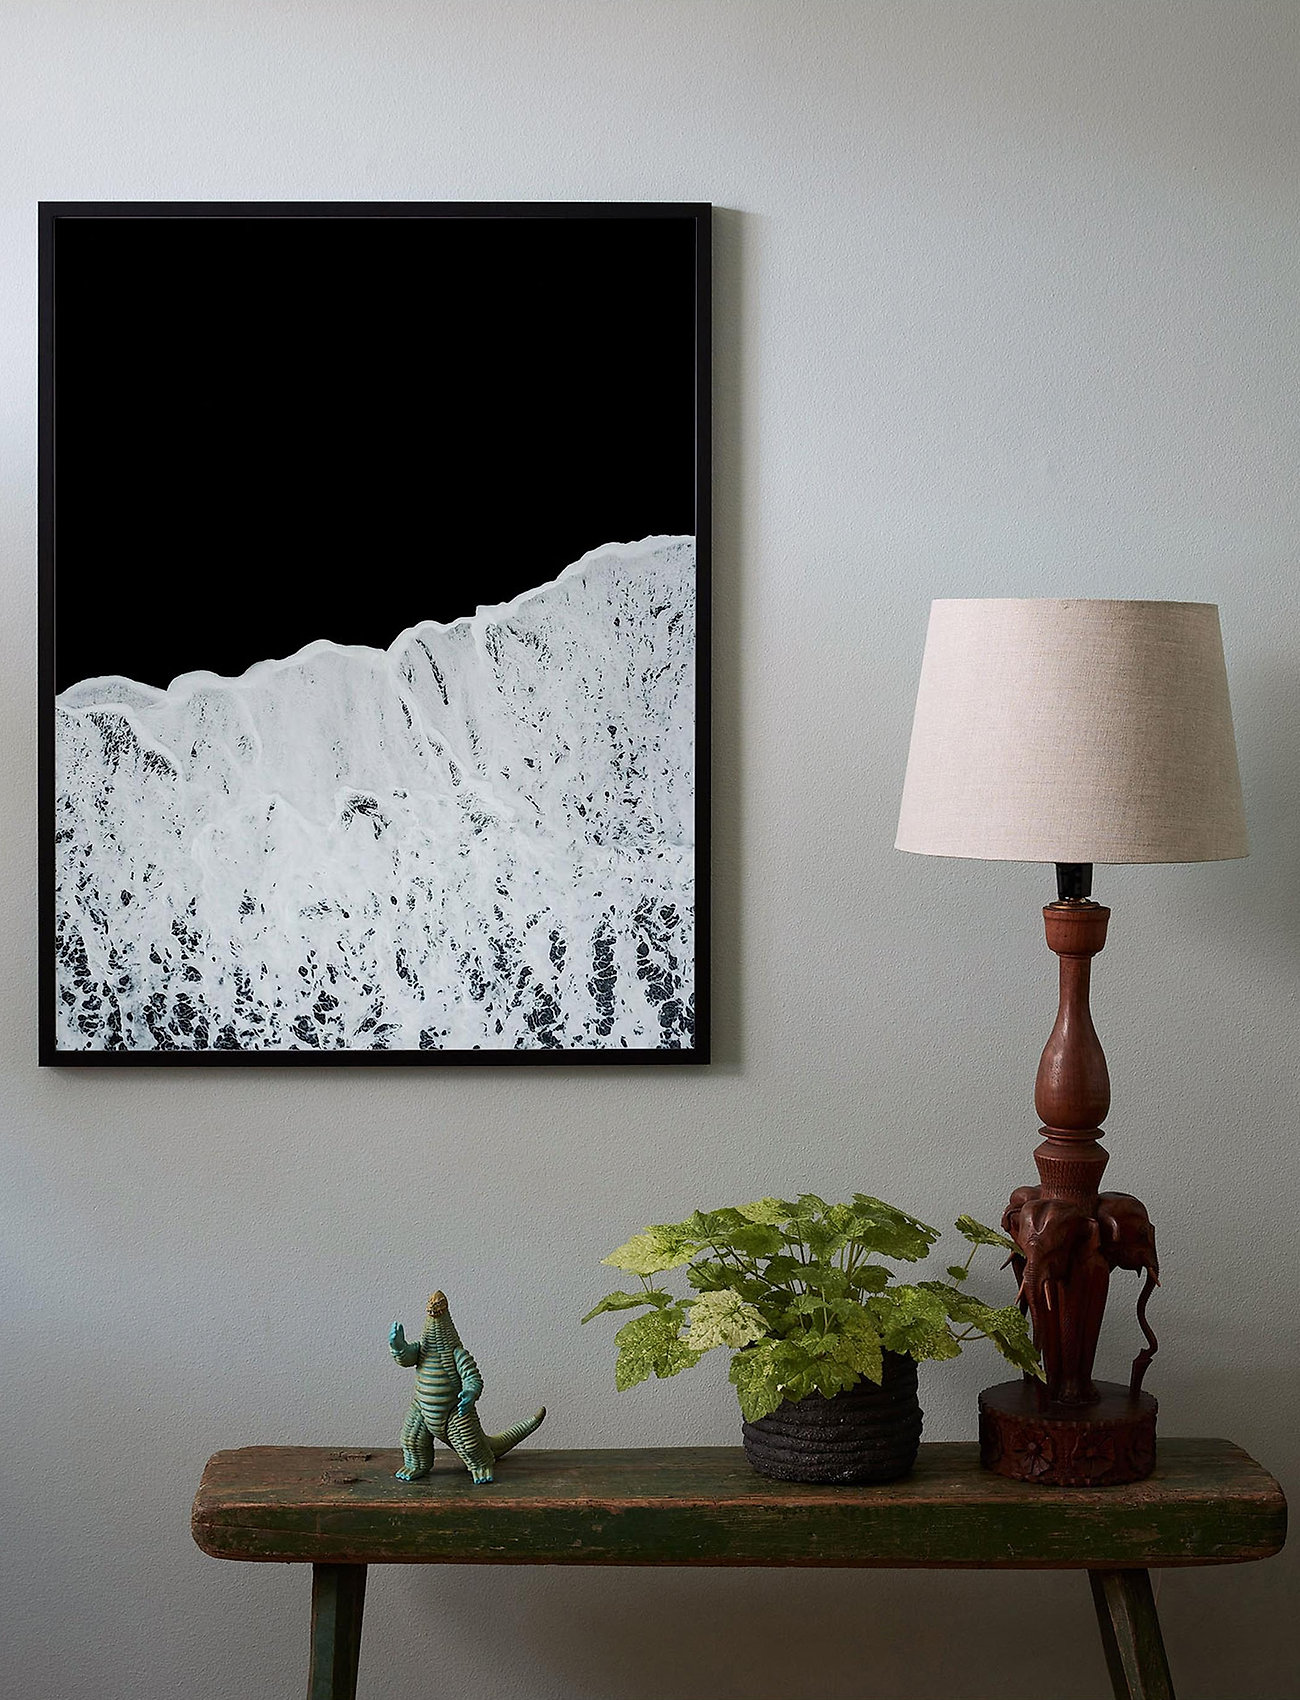 Democratic Gallery - Poster Waves - décor - black - 1